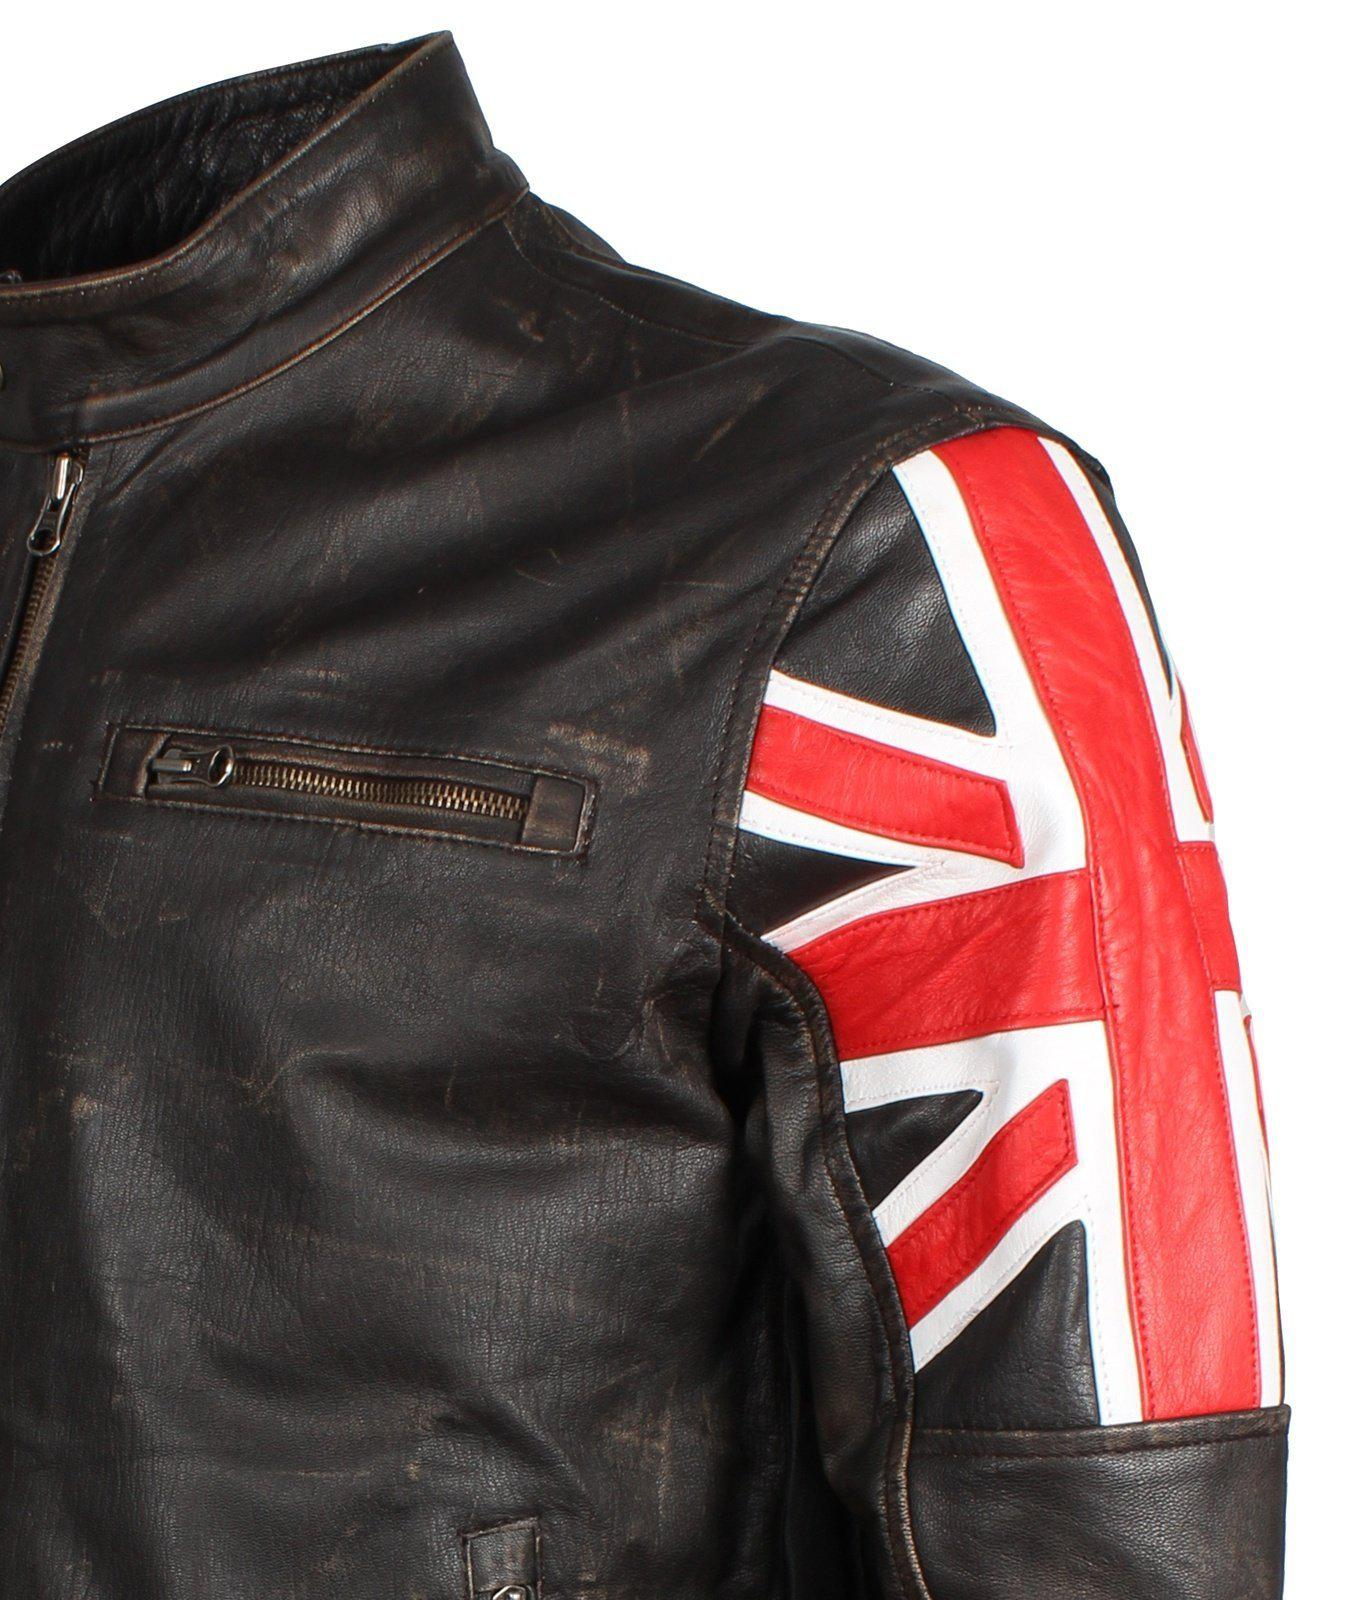 Union Jack Jacket UK for Men